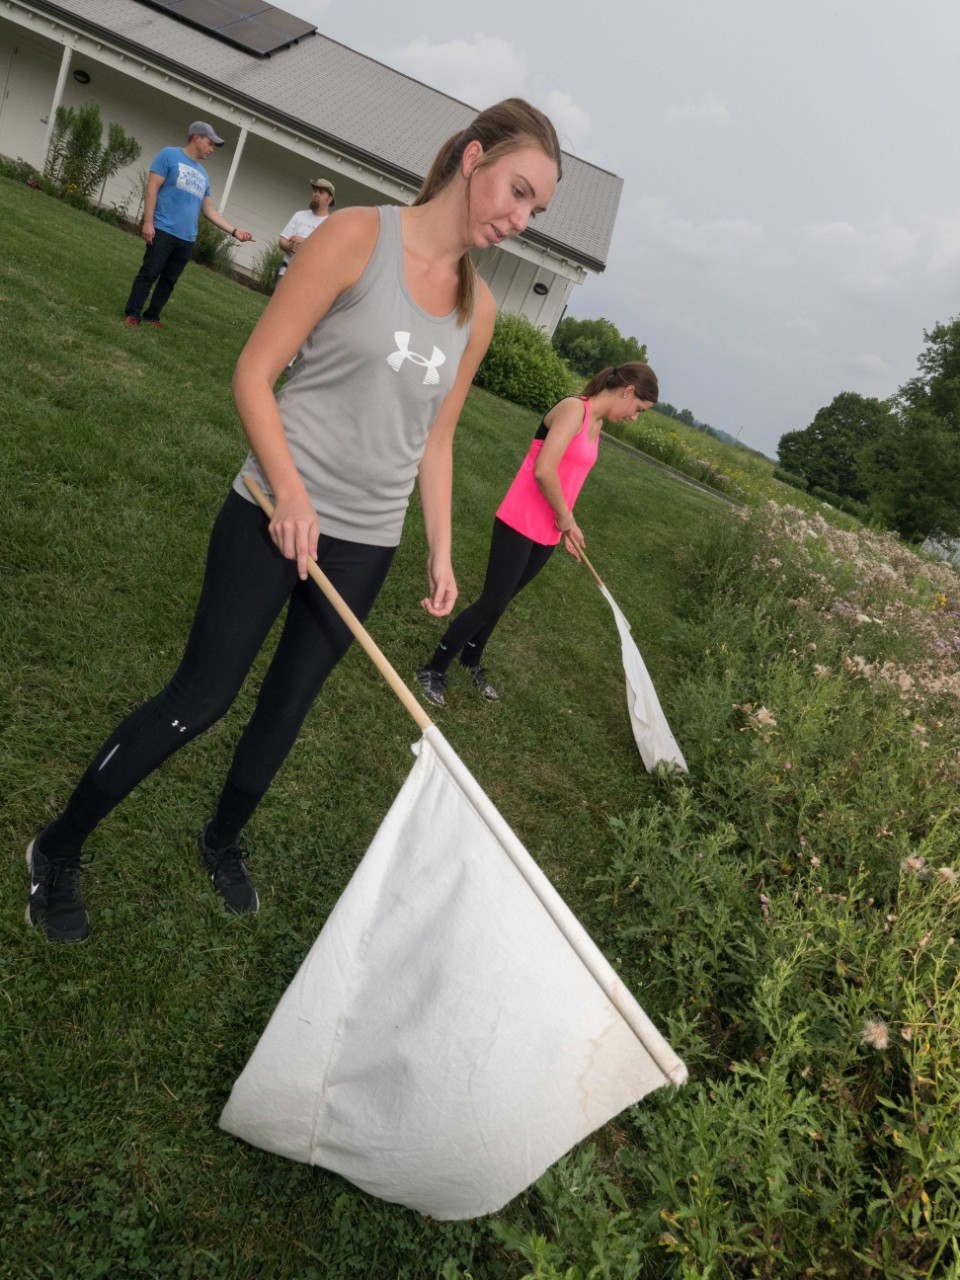 Students use fleece flags to collect ticks at the UC Center for Field Studies.